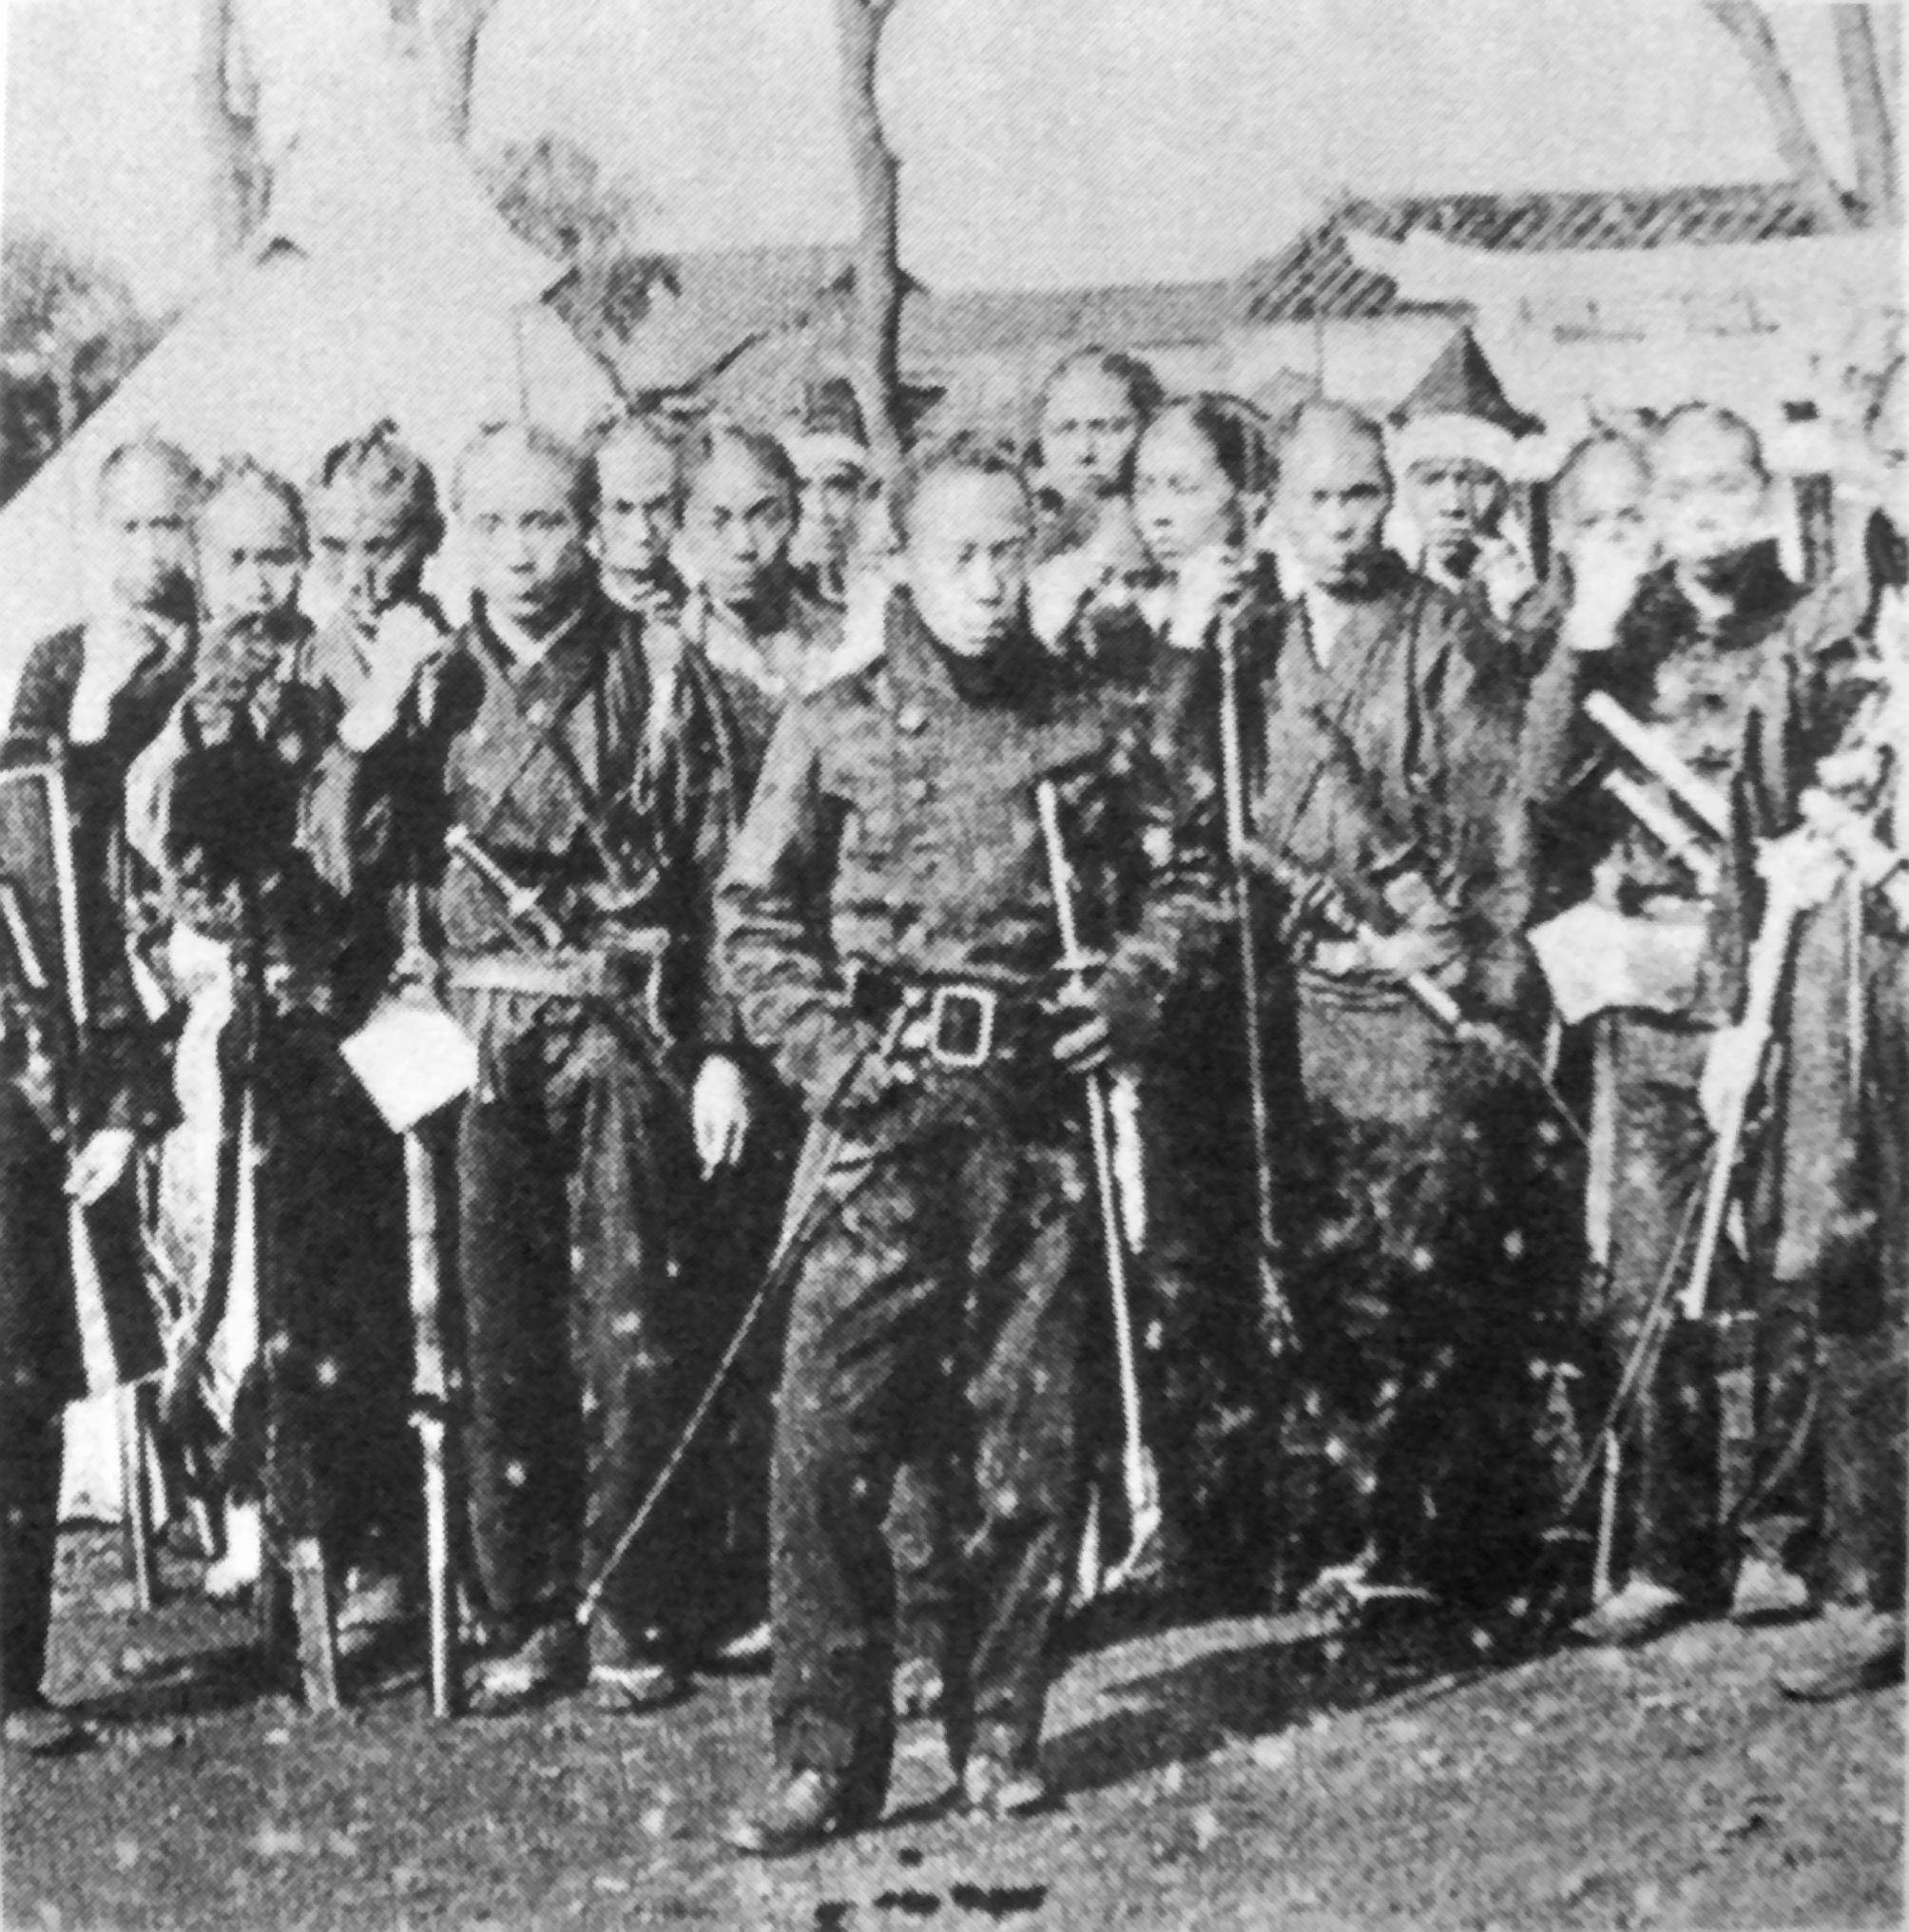 https://upload.wikimedia.org/wikipedia/commons/3/39/Bakufu_soldiers_in_Western_uniform.jpg